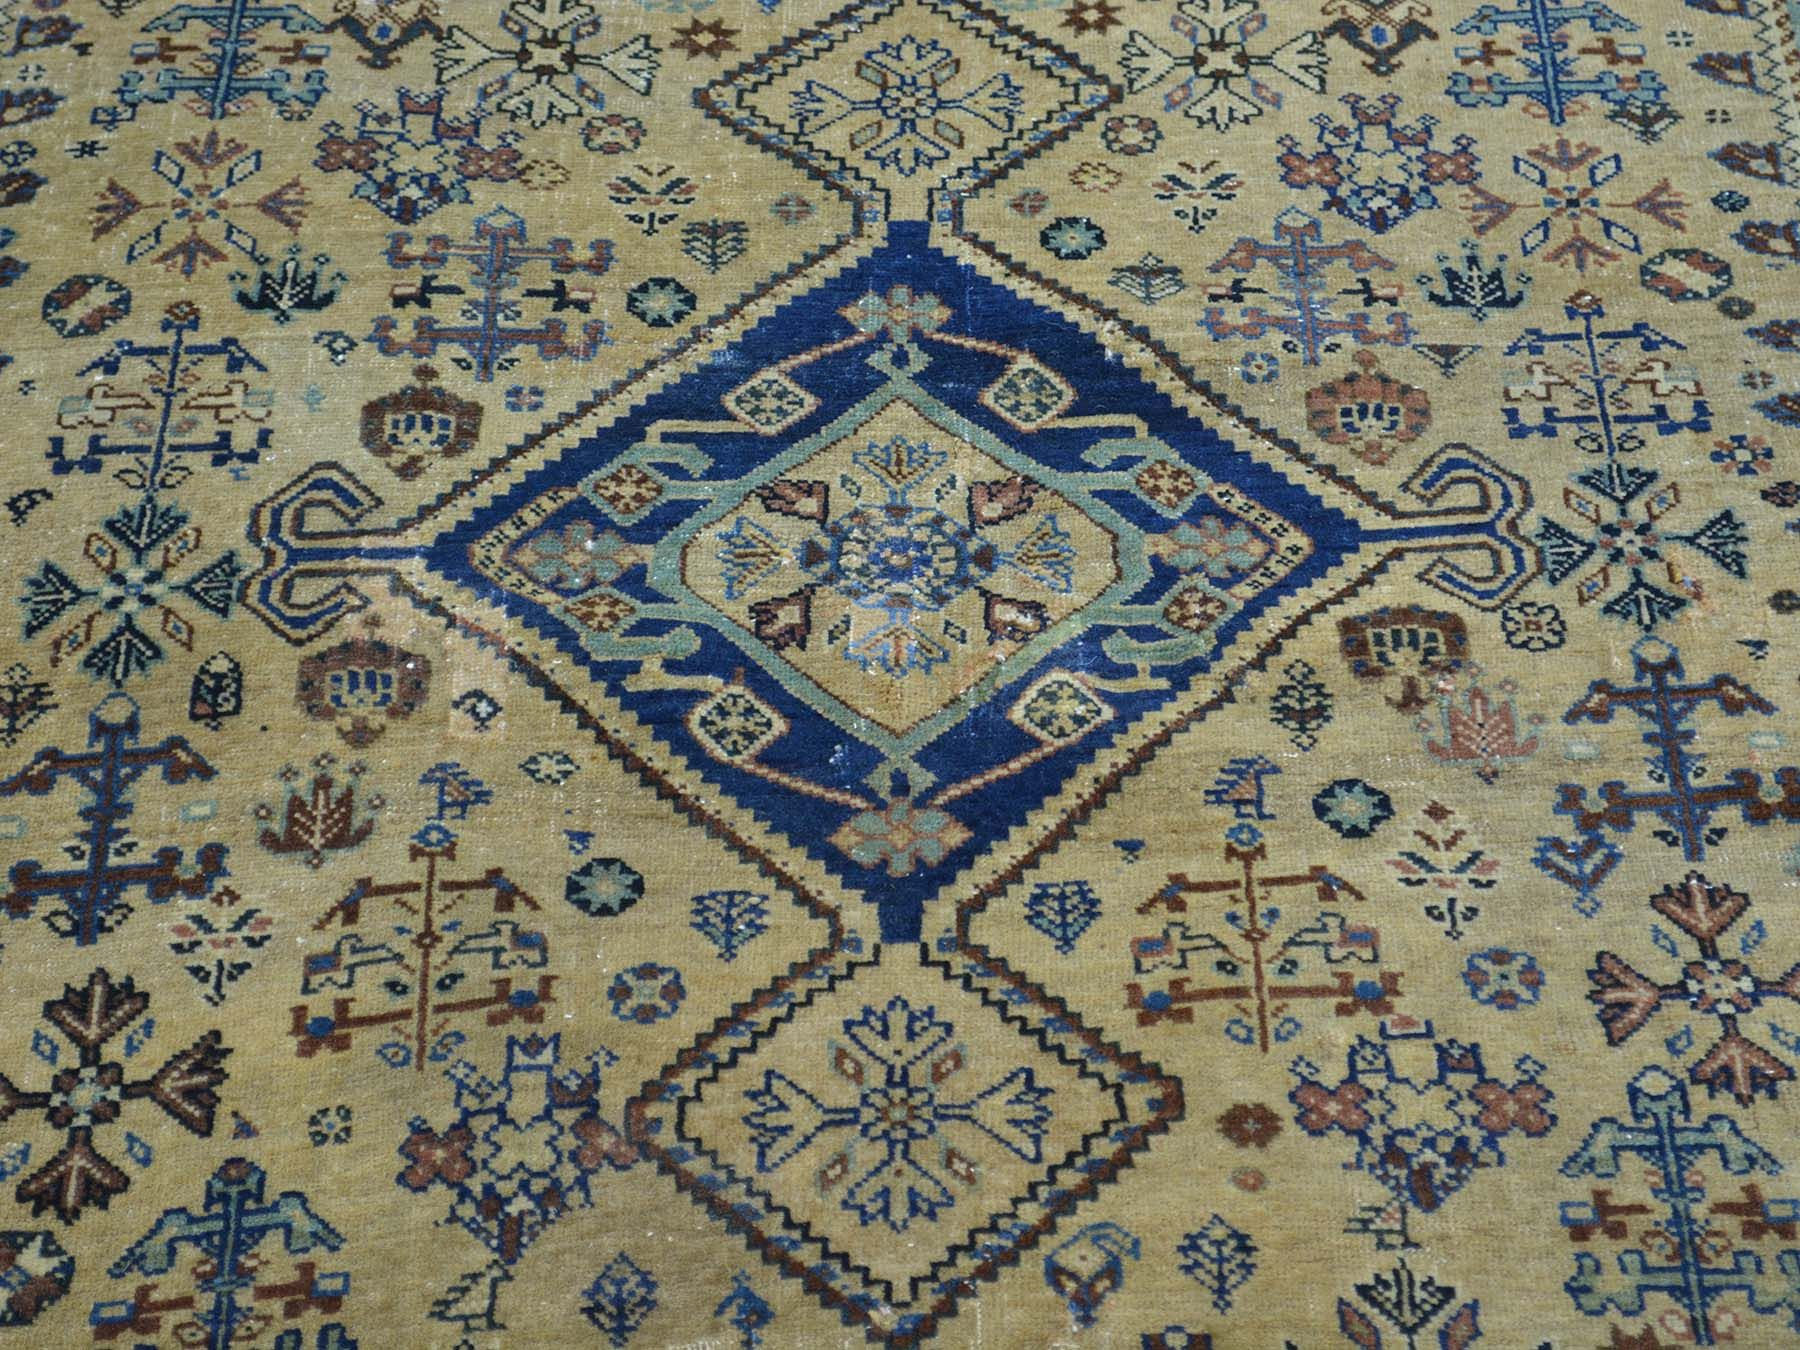 "Buy 4'1""x5'4"" Antique Persian Qashqai with Some Repairs Good Cond Rug #rug #rugstore #rugsale #arearug #rugcleaning #rugwash #rugshopping #rugrepair #carpetcleaning"